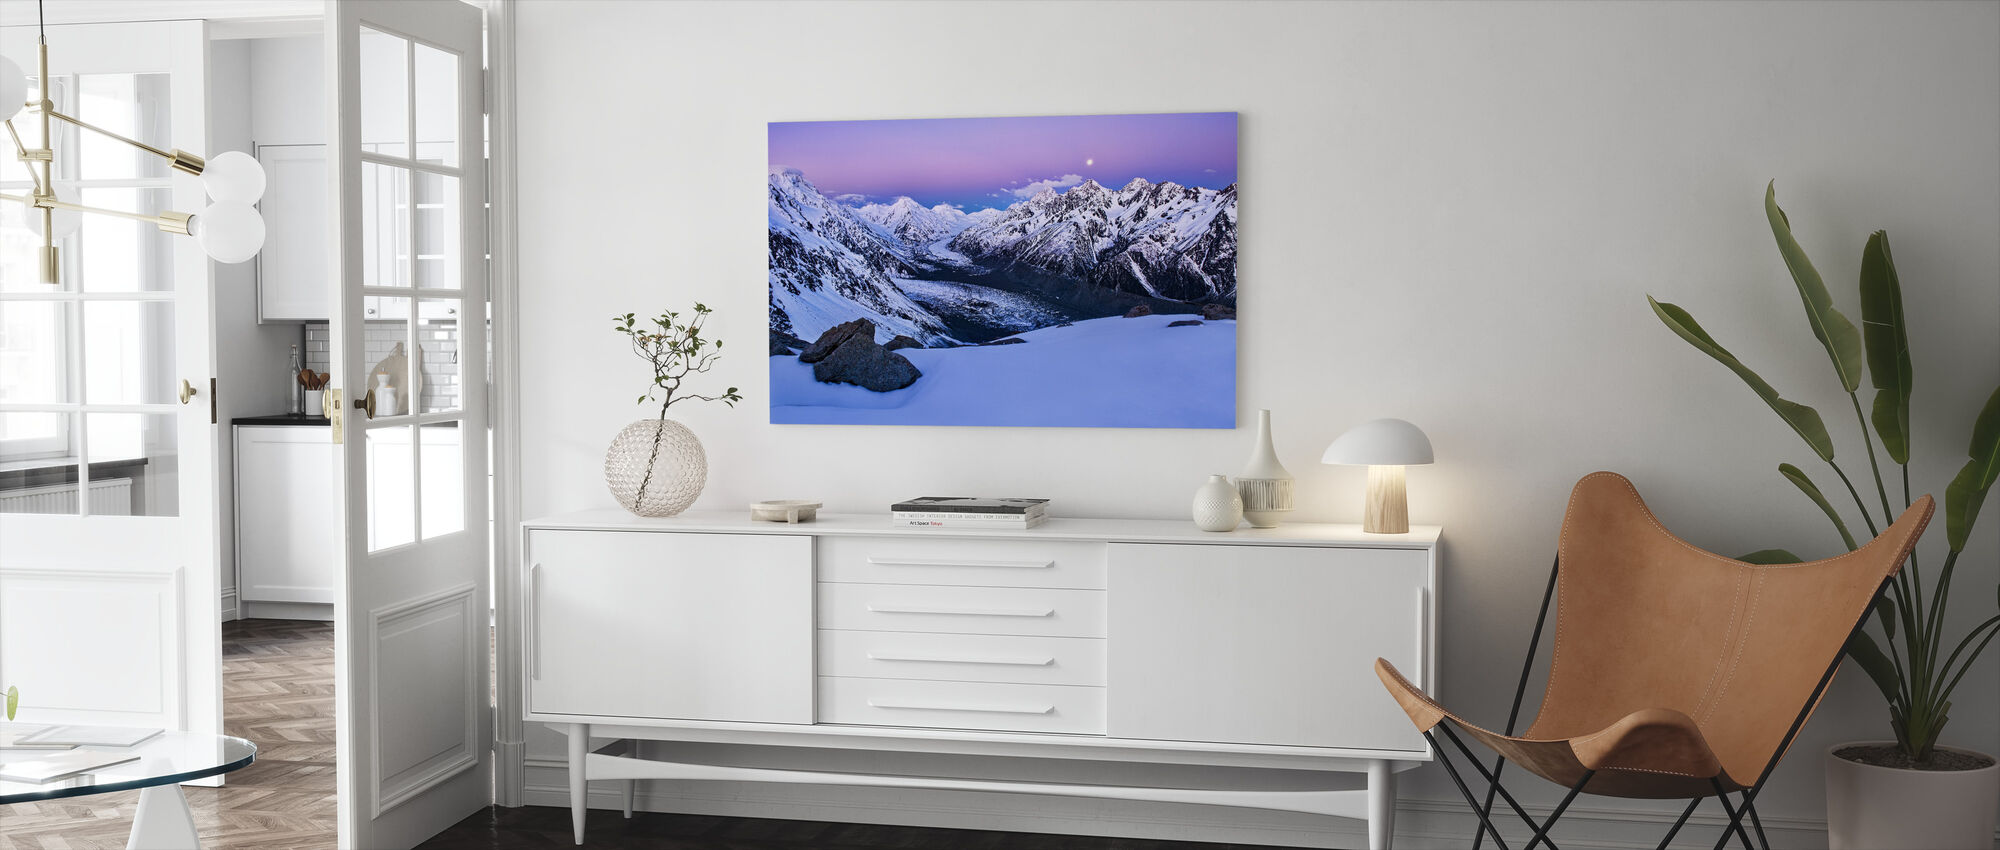 State of Tranquility - Canvas print - Living Room